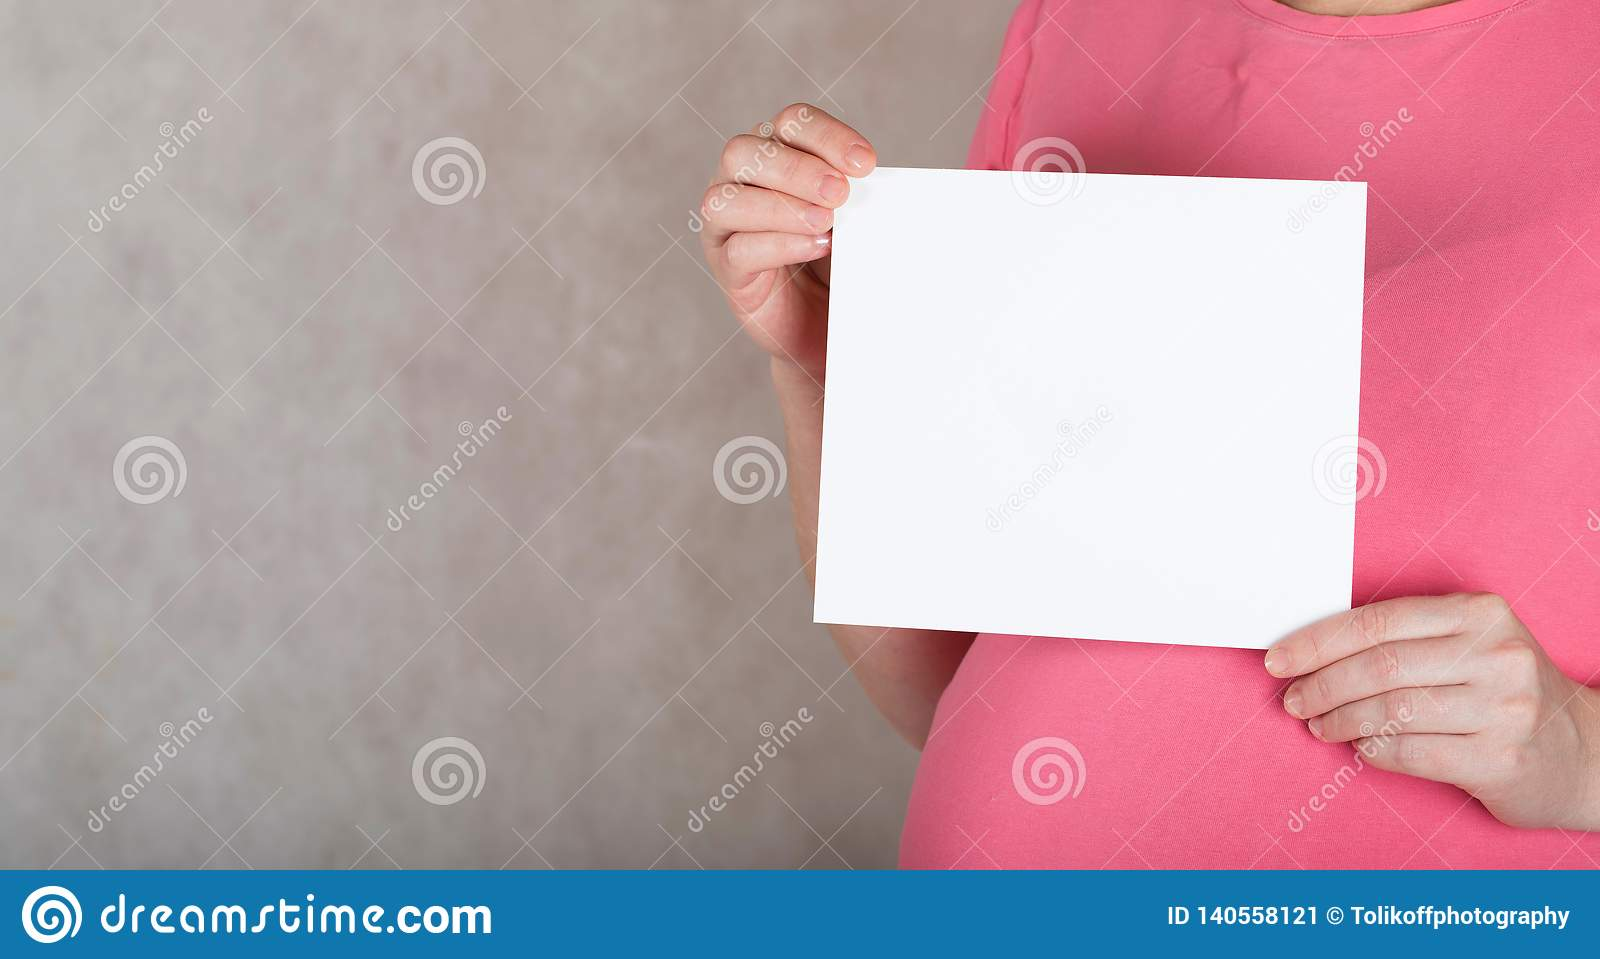 Young pregnant between 30 and 35 years old woman keeps a blank white sheet of paper